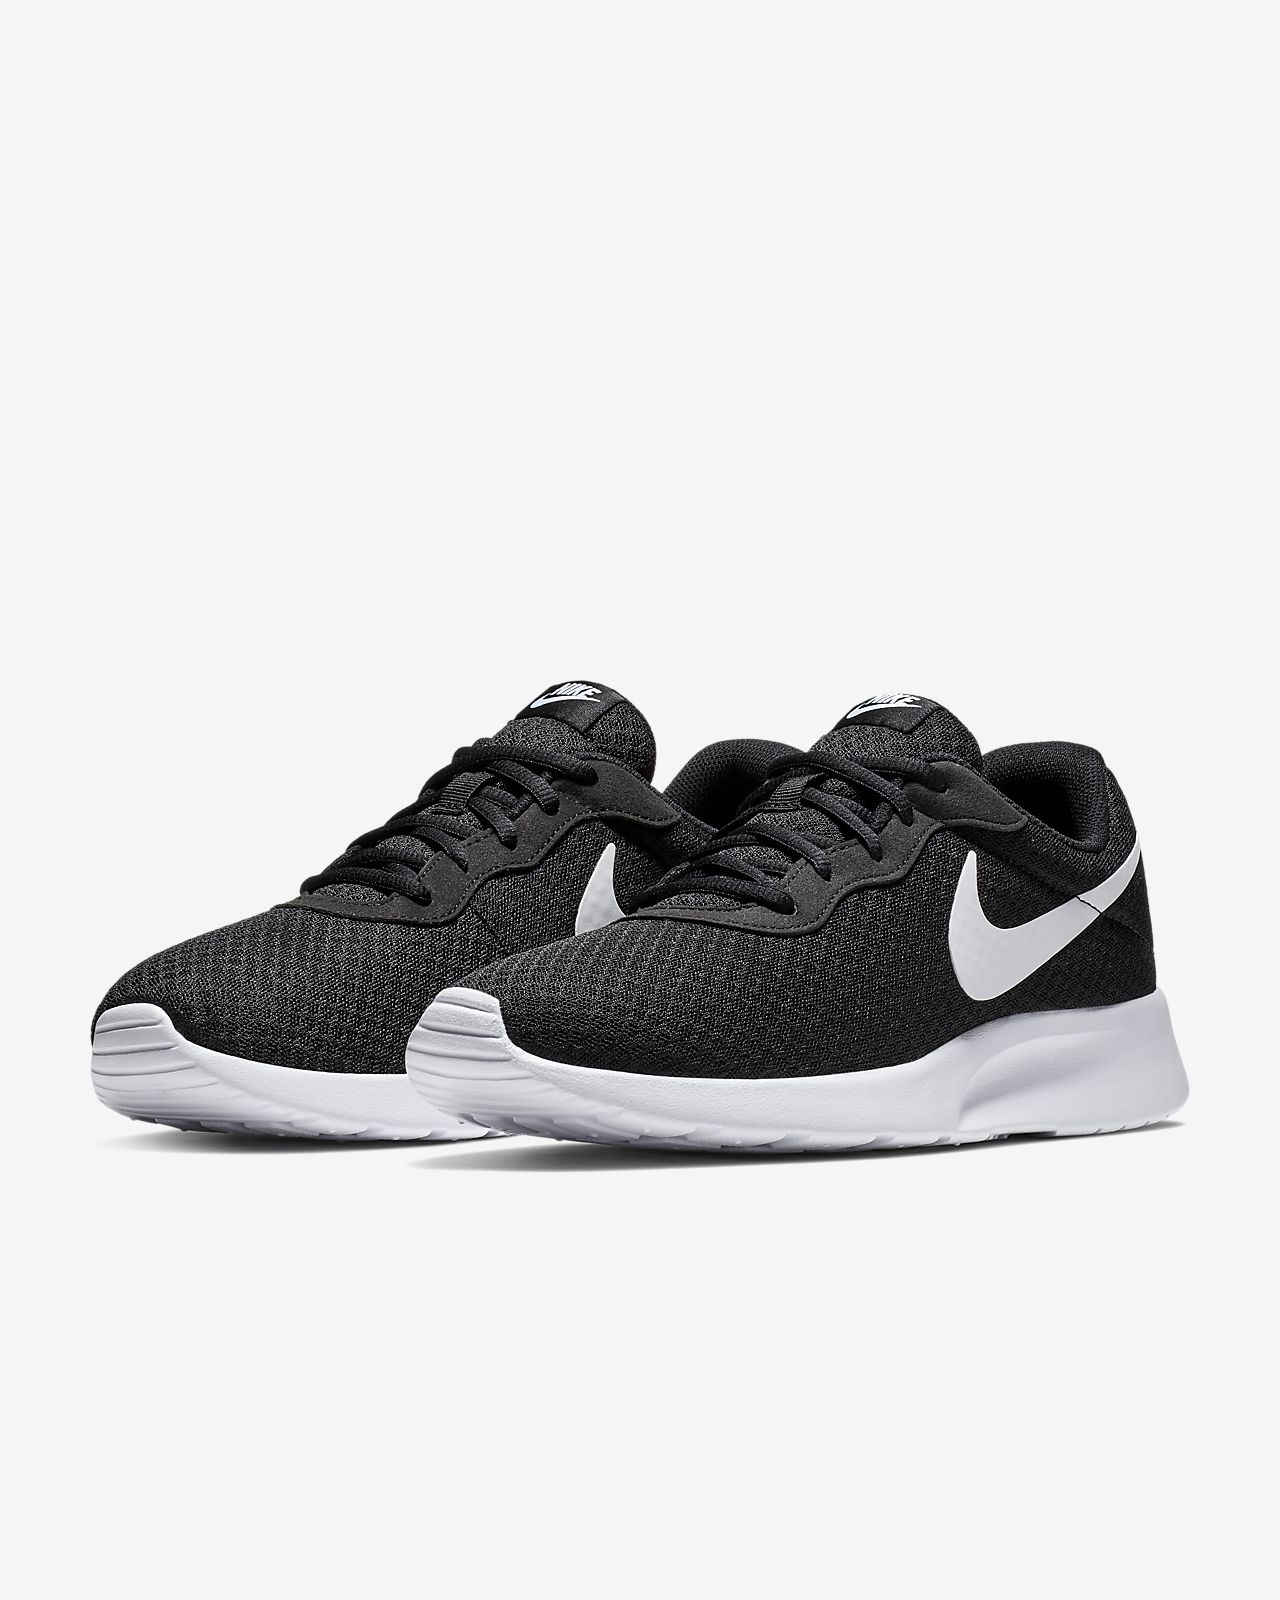 nike clearance cheap workout clothes, Cheap white light grey